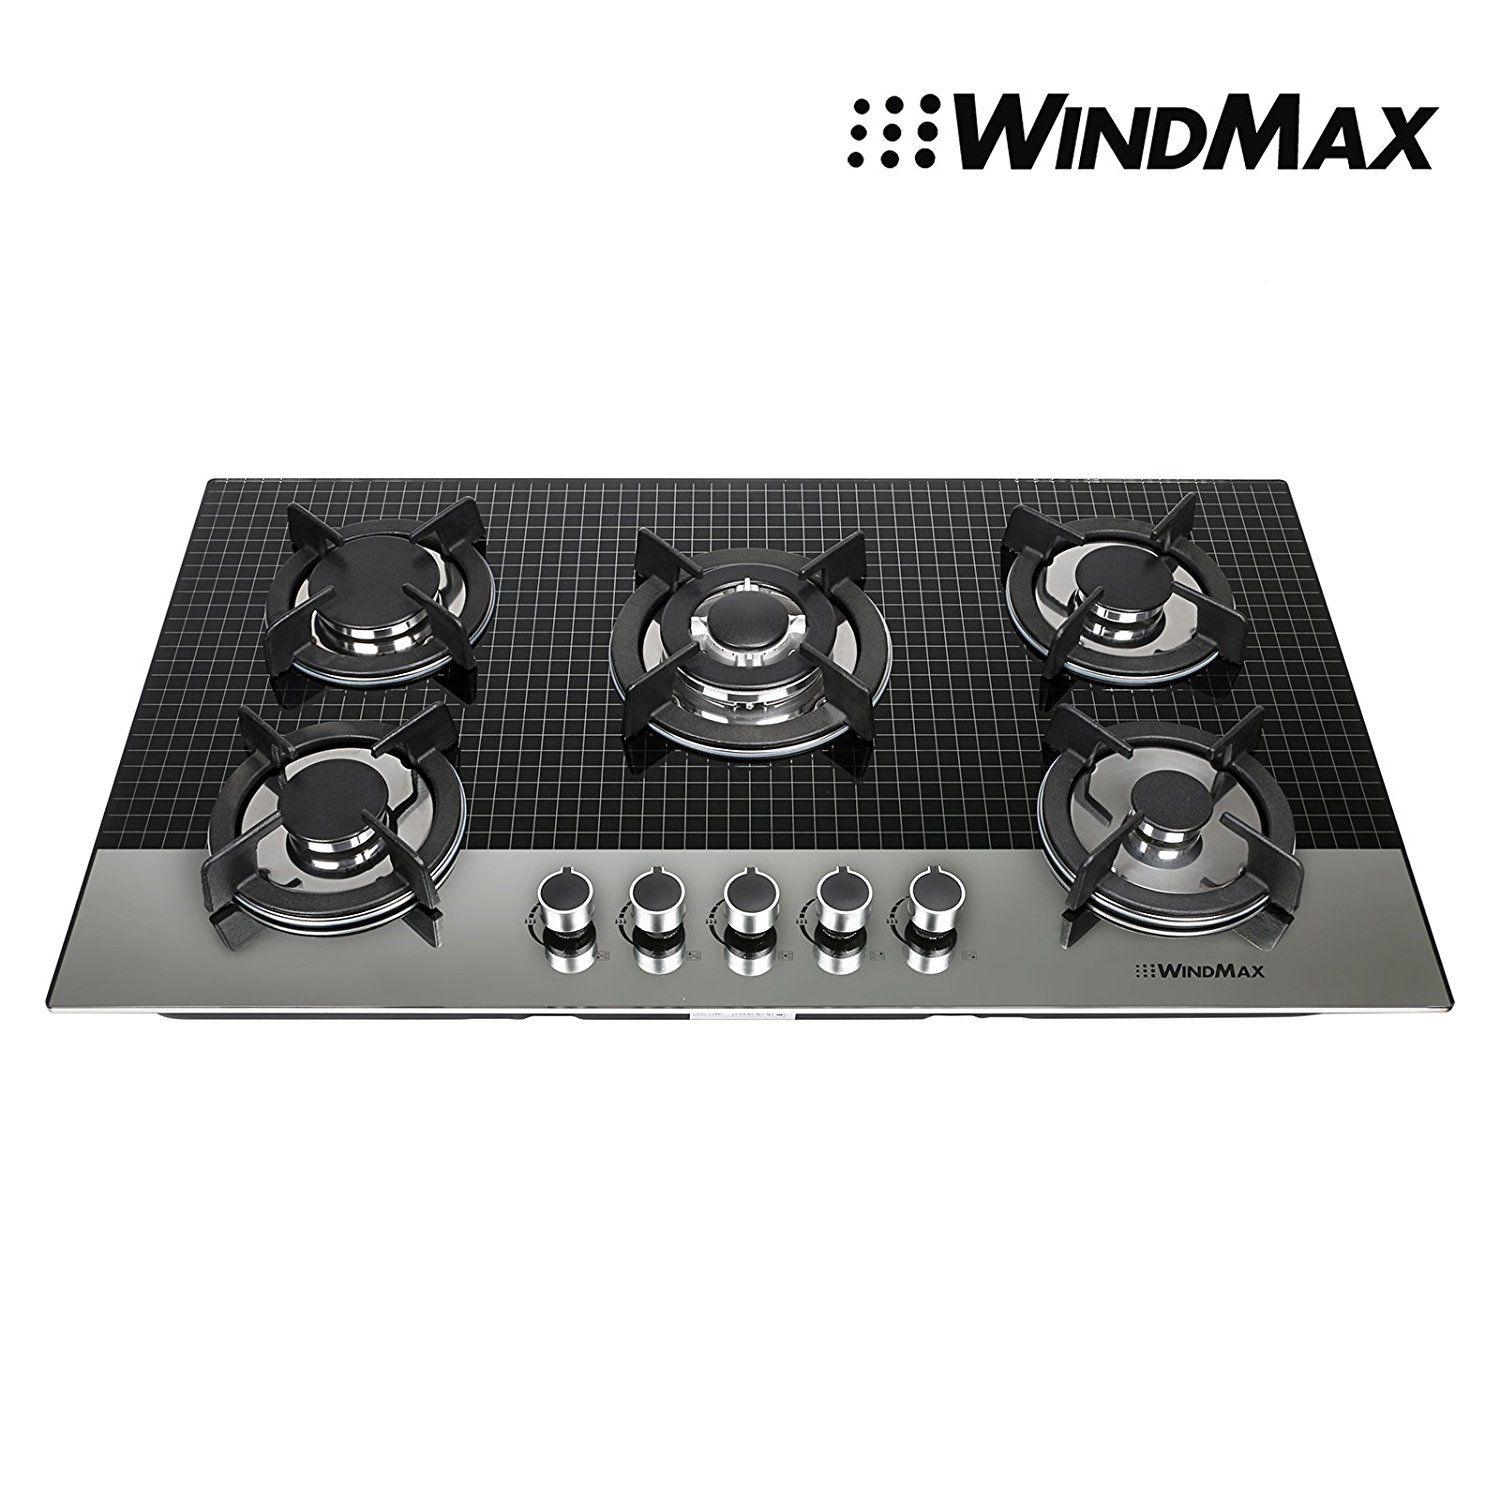 Appliances US Seller, Ship from CA,US METAWELL 23 Curve Stainless Steel 4 Burner Stove NG/LPG Hob Cooktops Cooker